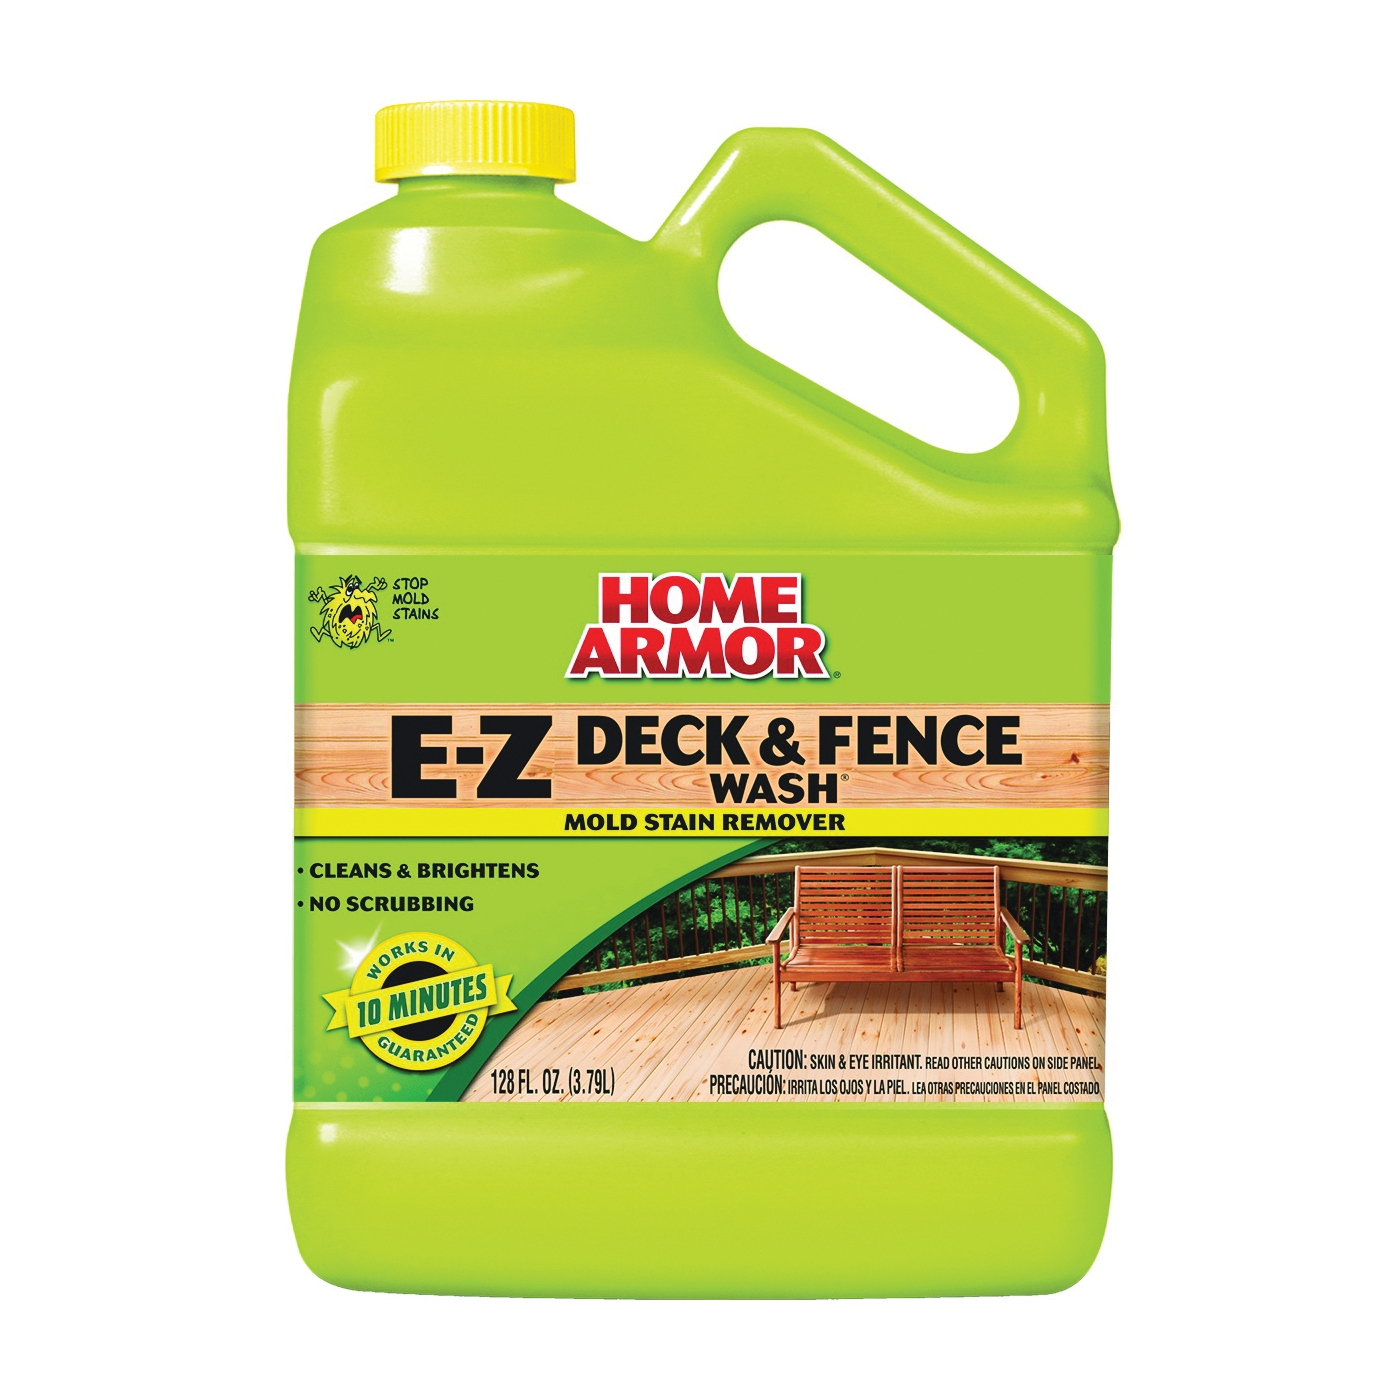 Picture of Mold Armor FG505 Deck and Fence Wash, Liquid, Yellow, 1 gal, Spray Dispenser